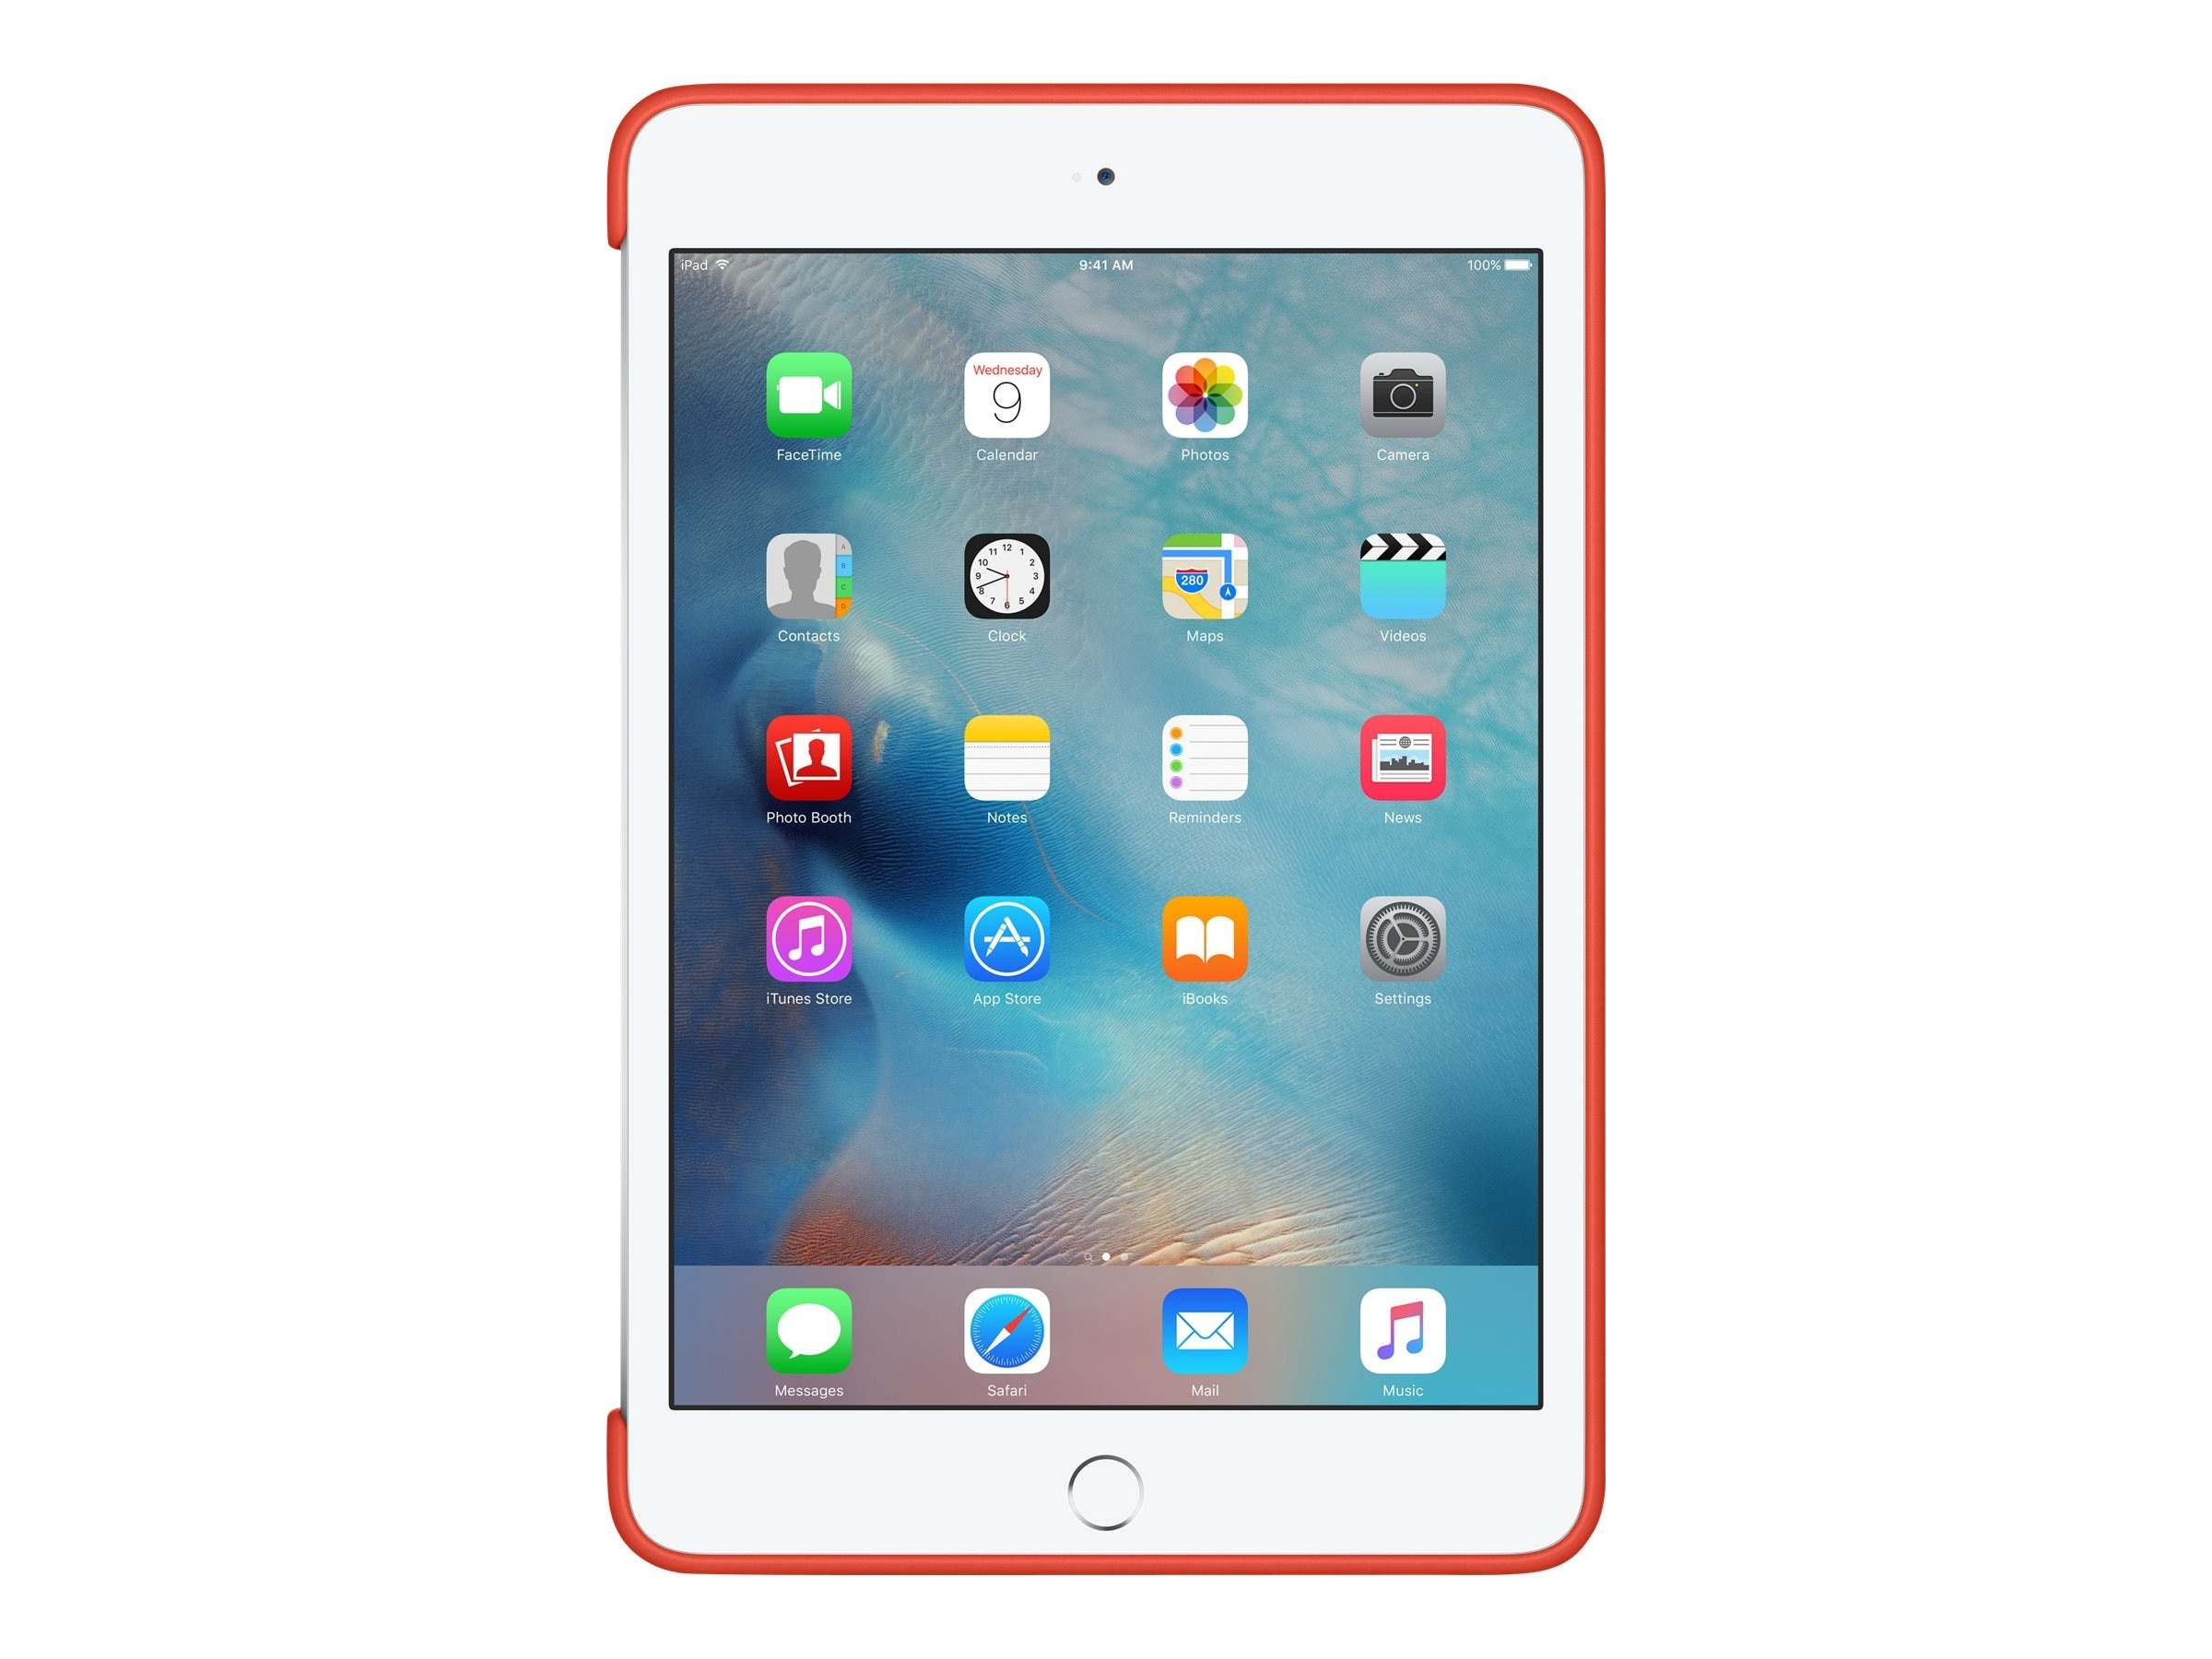 Apple Silicone Case for iPad mini 4, Orange, MLD42ZM/A, 32669008, Carrying Cases - Tablets & eReaders